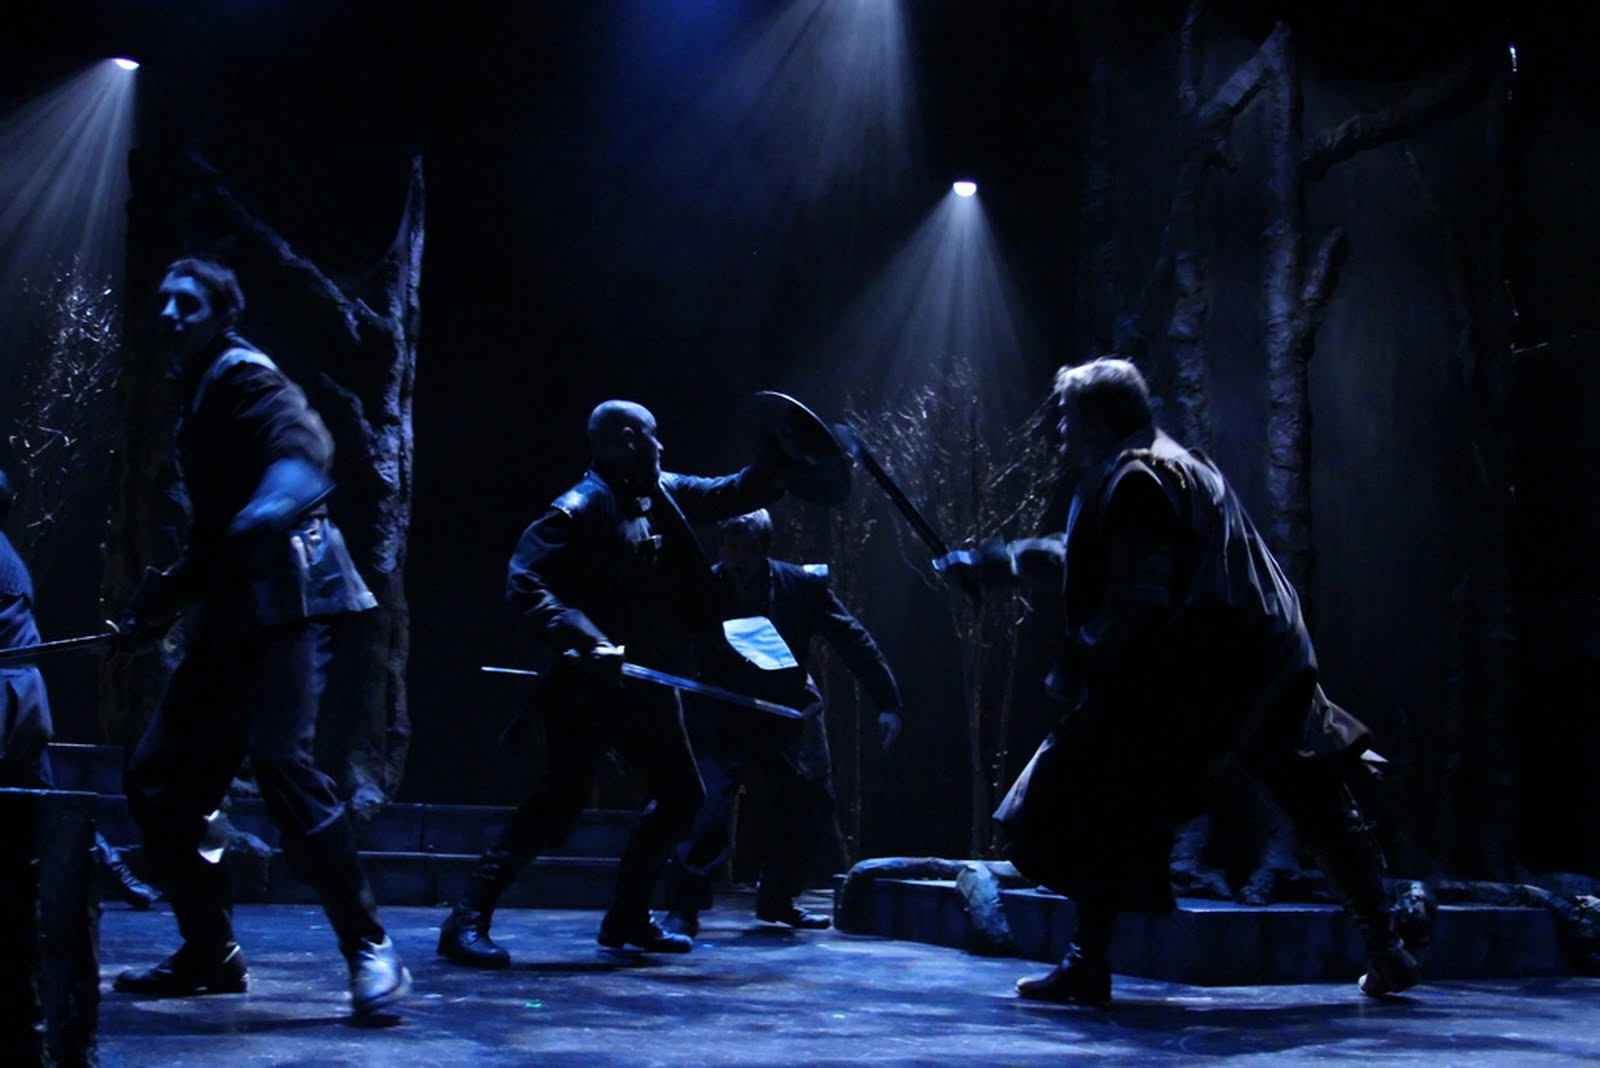 macbeth blood will have blood essay In macbeth, many symbols are used that parallel major themes in the play one of these symbols is blood, and the theme that it reinforces is killing, and.